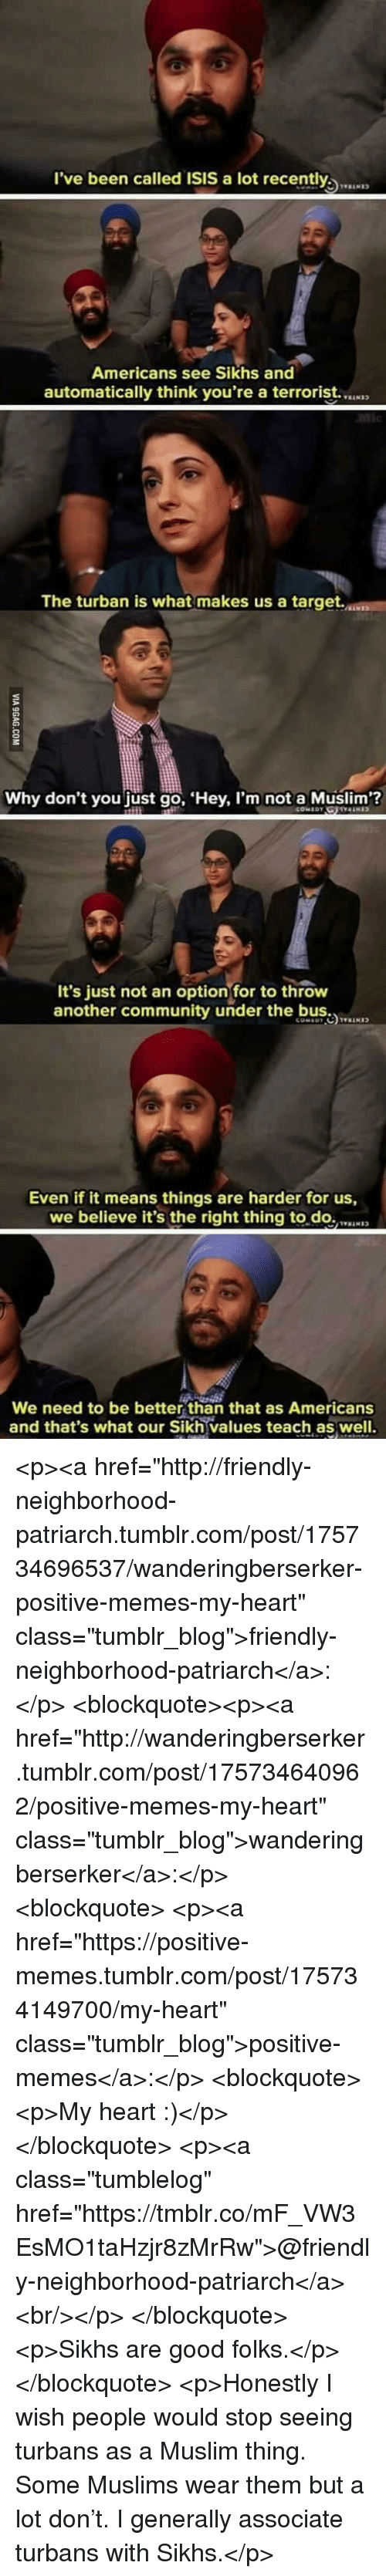 "Community, Isis, and Memes: l've been called ISIS a lot recently  Americans see Sikhs and  automatically think you're a terrorist.  The turban is what makes us a target.  Why don't you just go, Hey, I'm not a Muslim?  It's just not an optionfor to throw  another community under the b  Even if it means things are harder for us,  we believe it's the right thing to.do.N  We need to be better than that as Americans  and that's what our Sikh values teach as well. <p><a href=""http://friendly-neighborhood-patriarch.tumblr.com/post/175734696537/wanderingberserker-positive-memes-my-heart"" class=""tumblr_blog"">friendly-neighborhood-patriarch</a>:</p>  <blockquote><p><a href=""http://wanderingberserker.tumblr.com/post/175734640962/positive-memes-my-heart"" class=""tumblr_blog"">wanderingberserker</a>:</p><blockquote> <p><a href=""https://positive-memes.tumblr.com/post/175734149700/my-heart"" class=""tumblr_blog"">positive-memes</a>:</p> <blockquote><p>My heart :)</p></blockquote> <p><a class=""tumblelog"" href=""https://tmblr.co/mF_VW3EsMO1taHzjr8zMrRw"">@friendly-neighborhood-patriarch</a><br/></p> </blockquote> <p>Sikhs are good folks.</p></blockquote>  <p>Honestly I wish people would stop seeing turbans as a Muslim thing. Some Muslims wear them but a lot don't. I generally associate turbans with Sikhs.</p>"